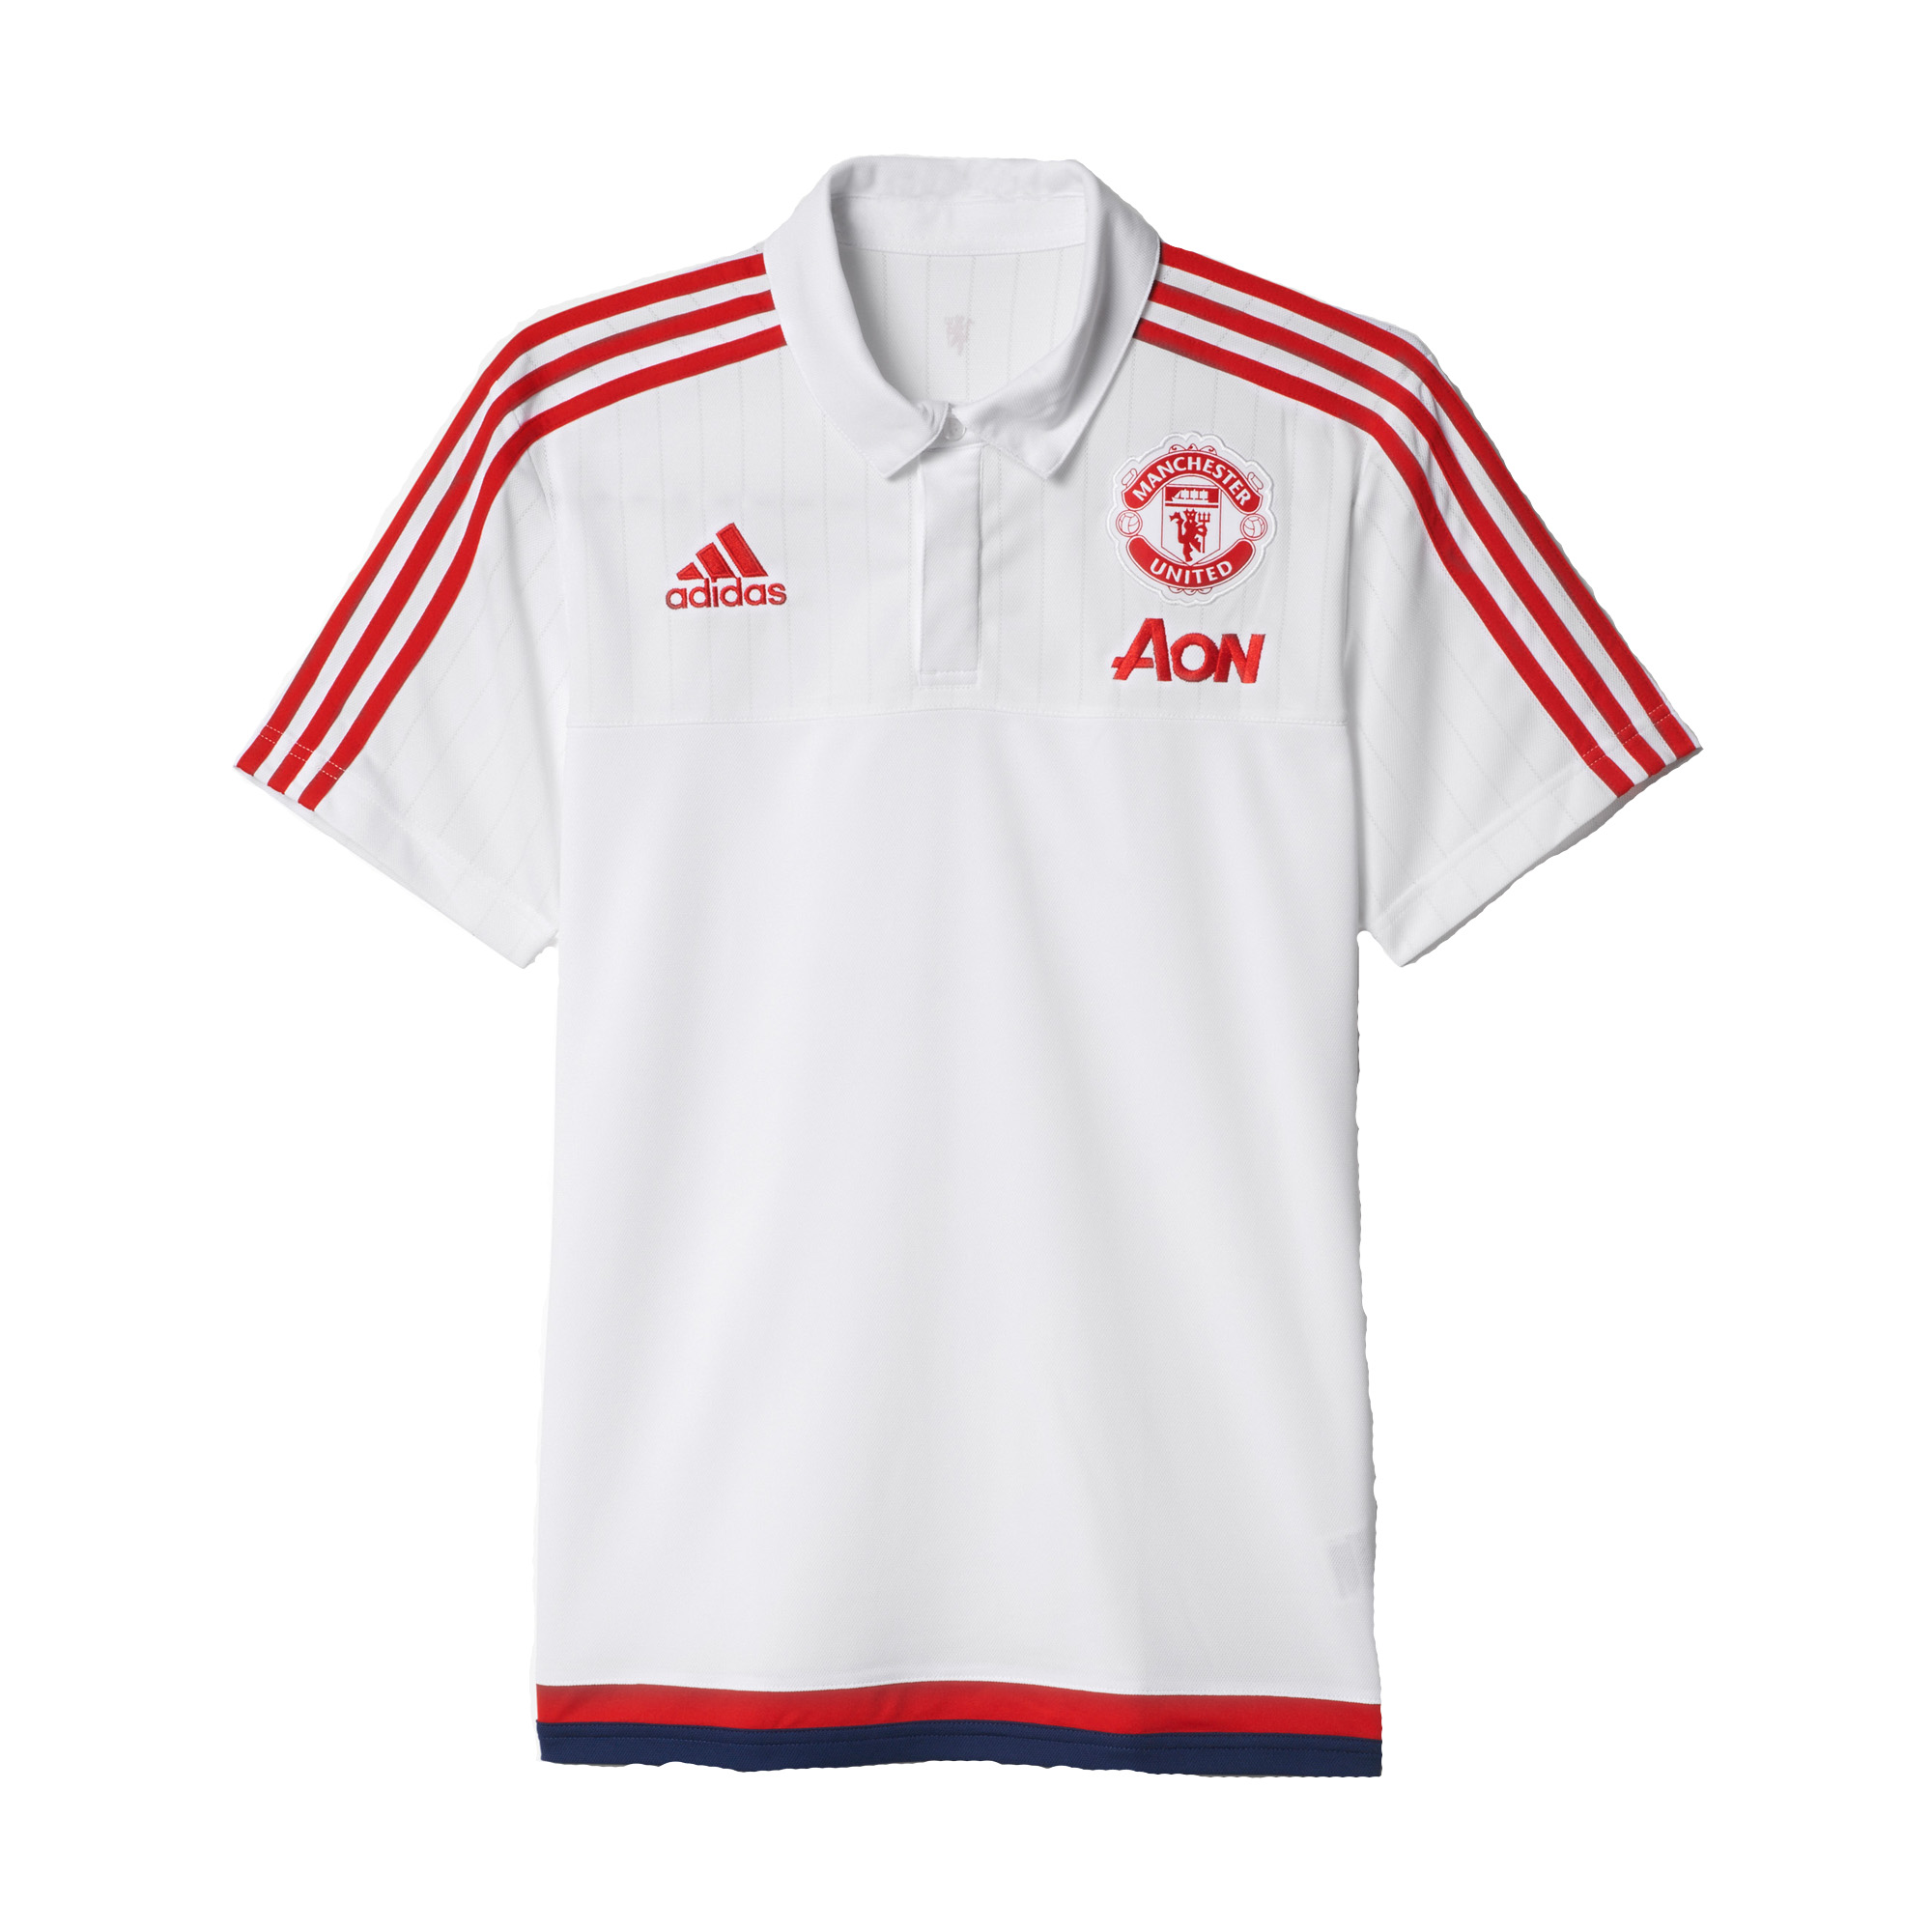 adidas Herren Manchester United Trainings Polo 2015/16 AI7354 XXL